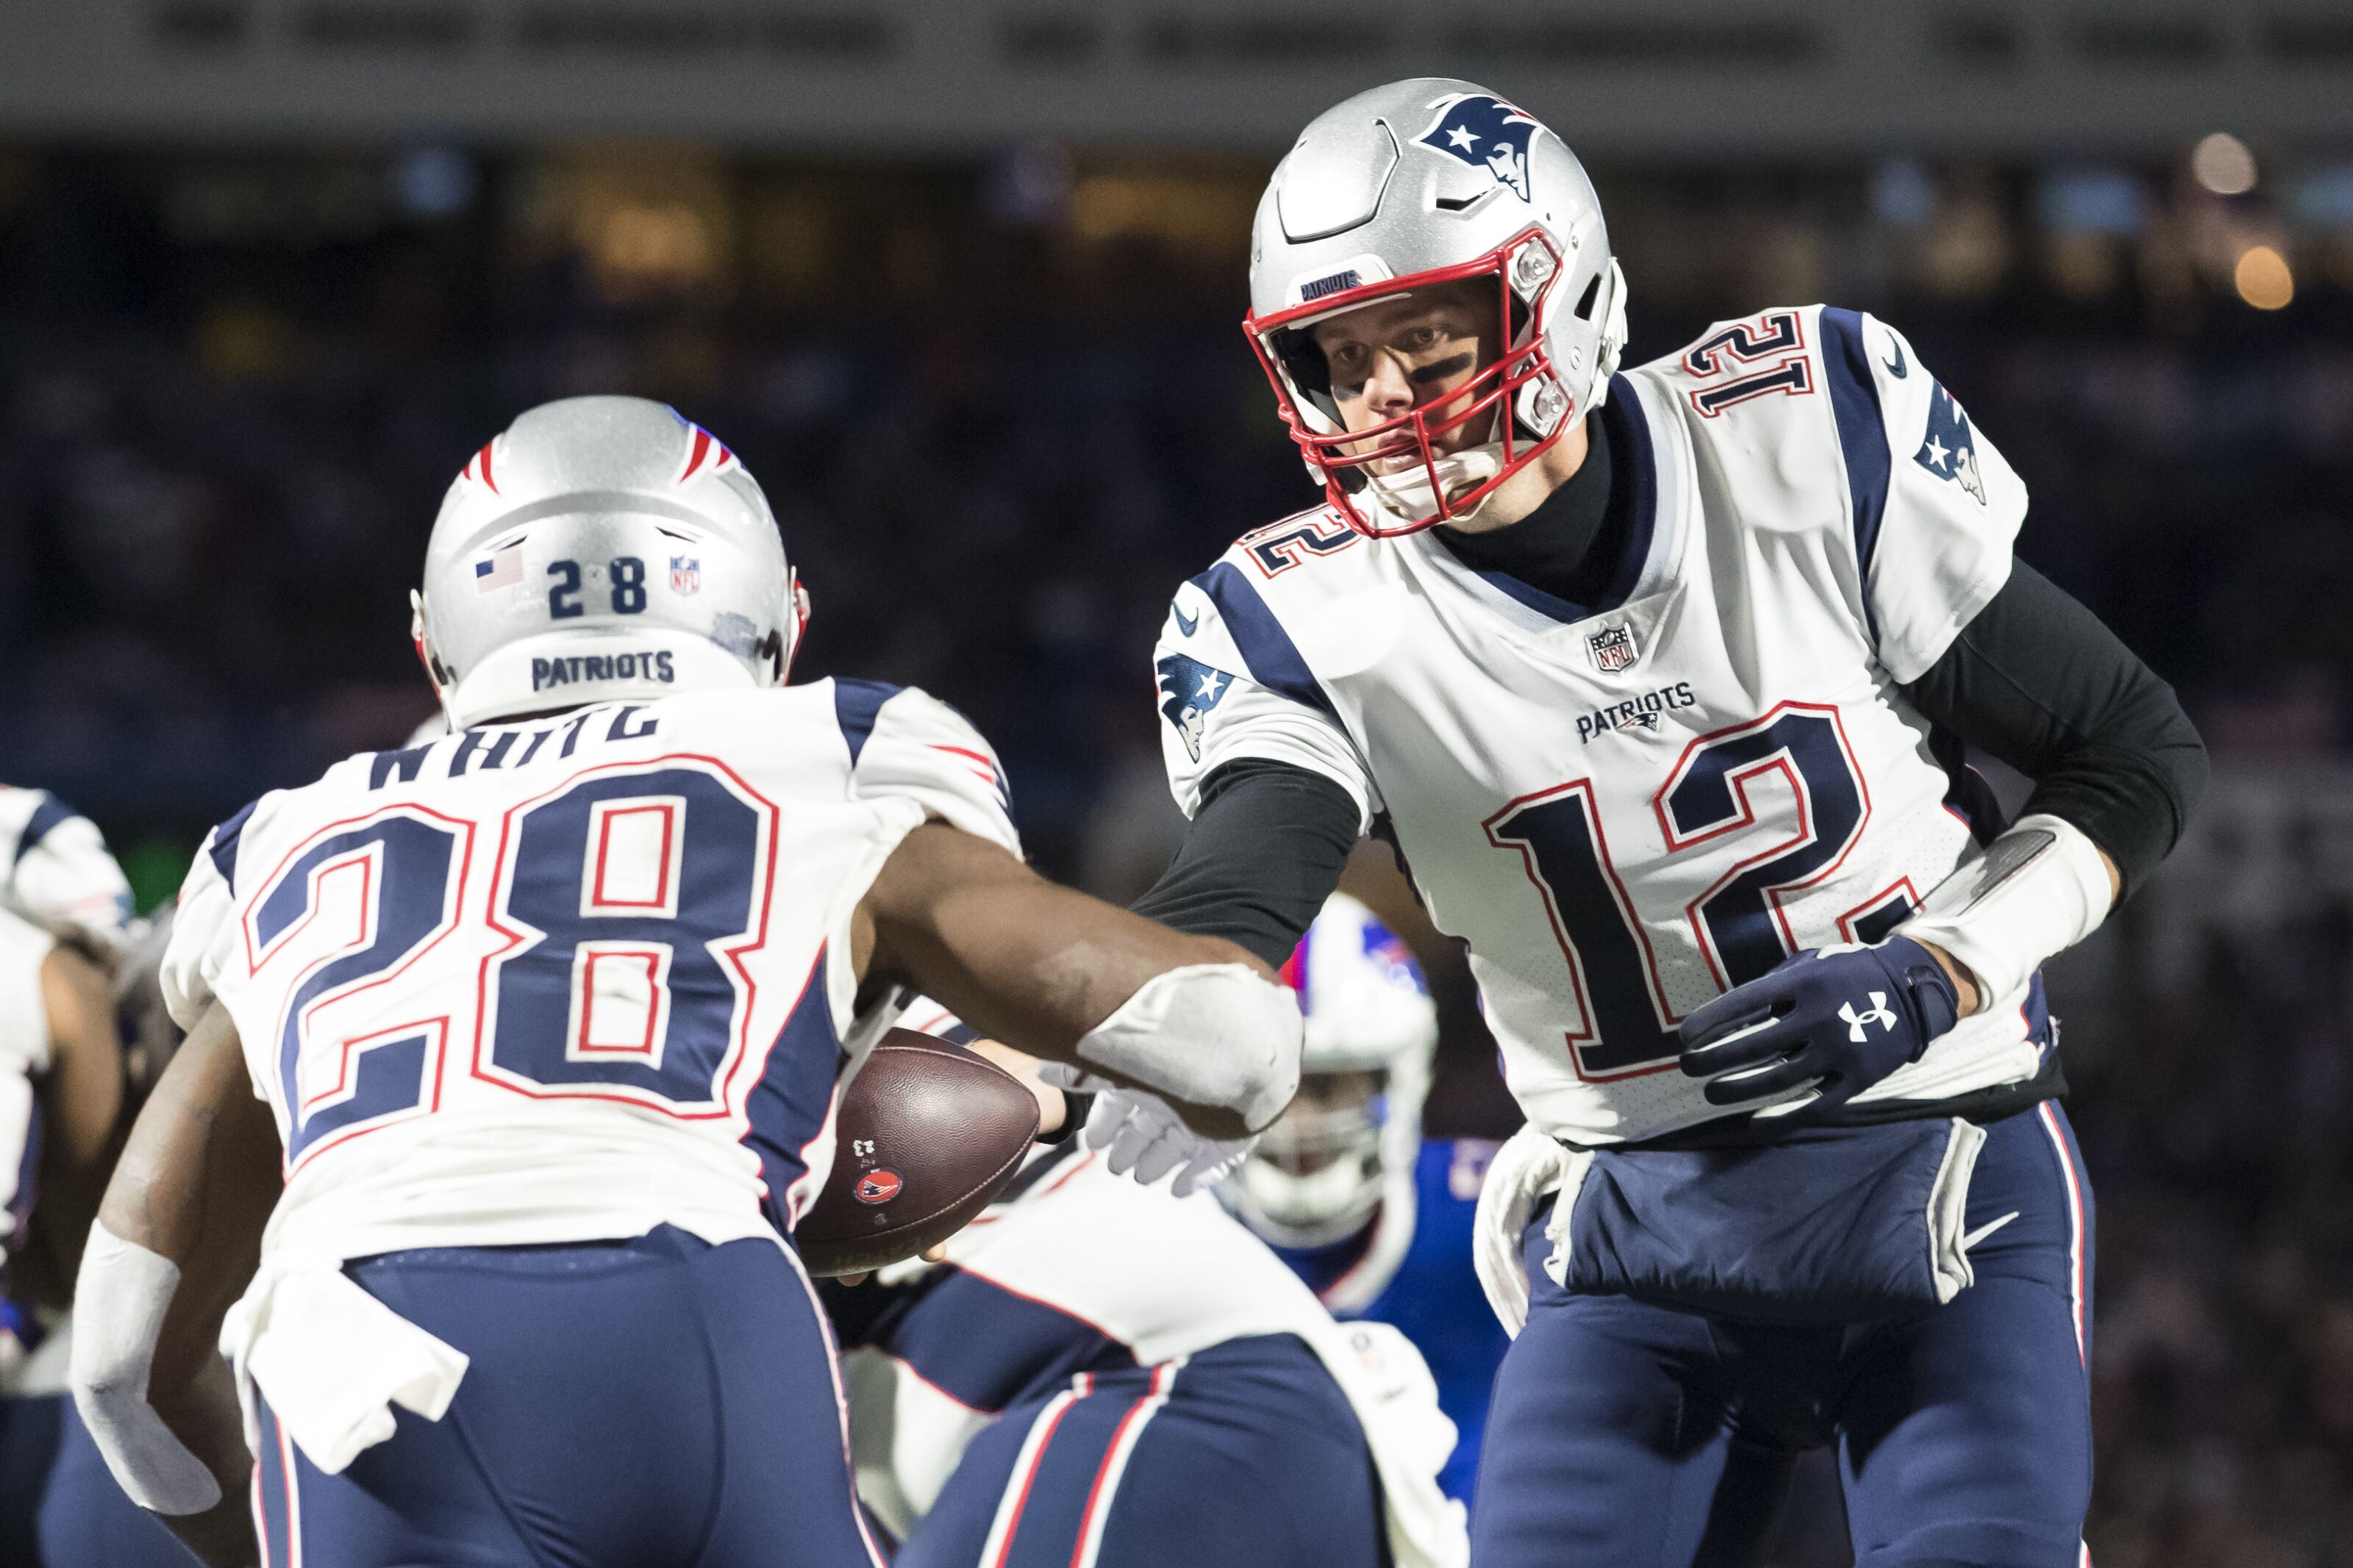 7dae19395cd41 Patriots kryptonite is in the red zone - NFL News